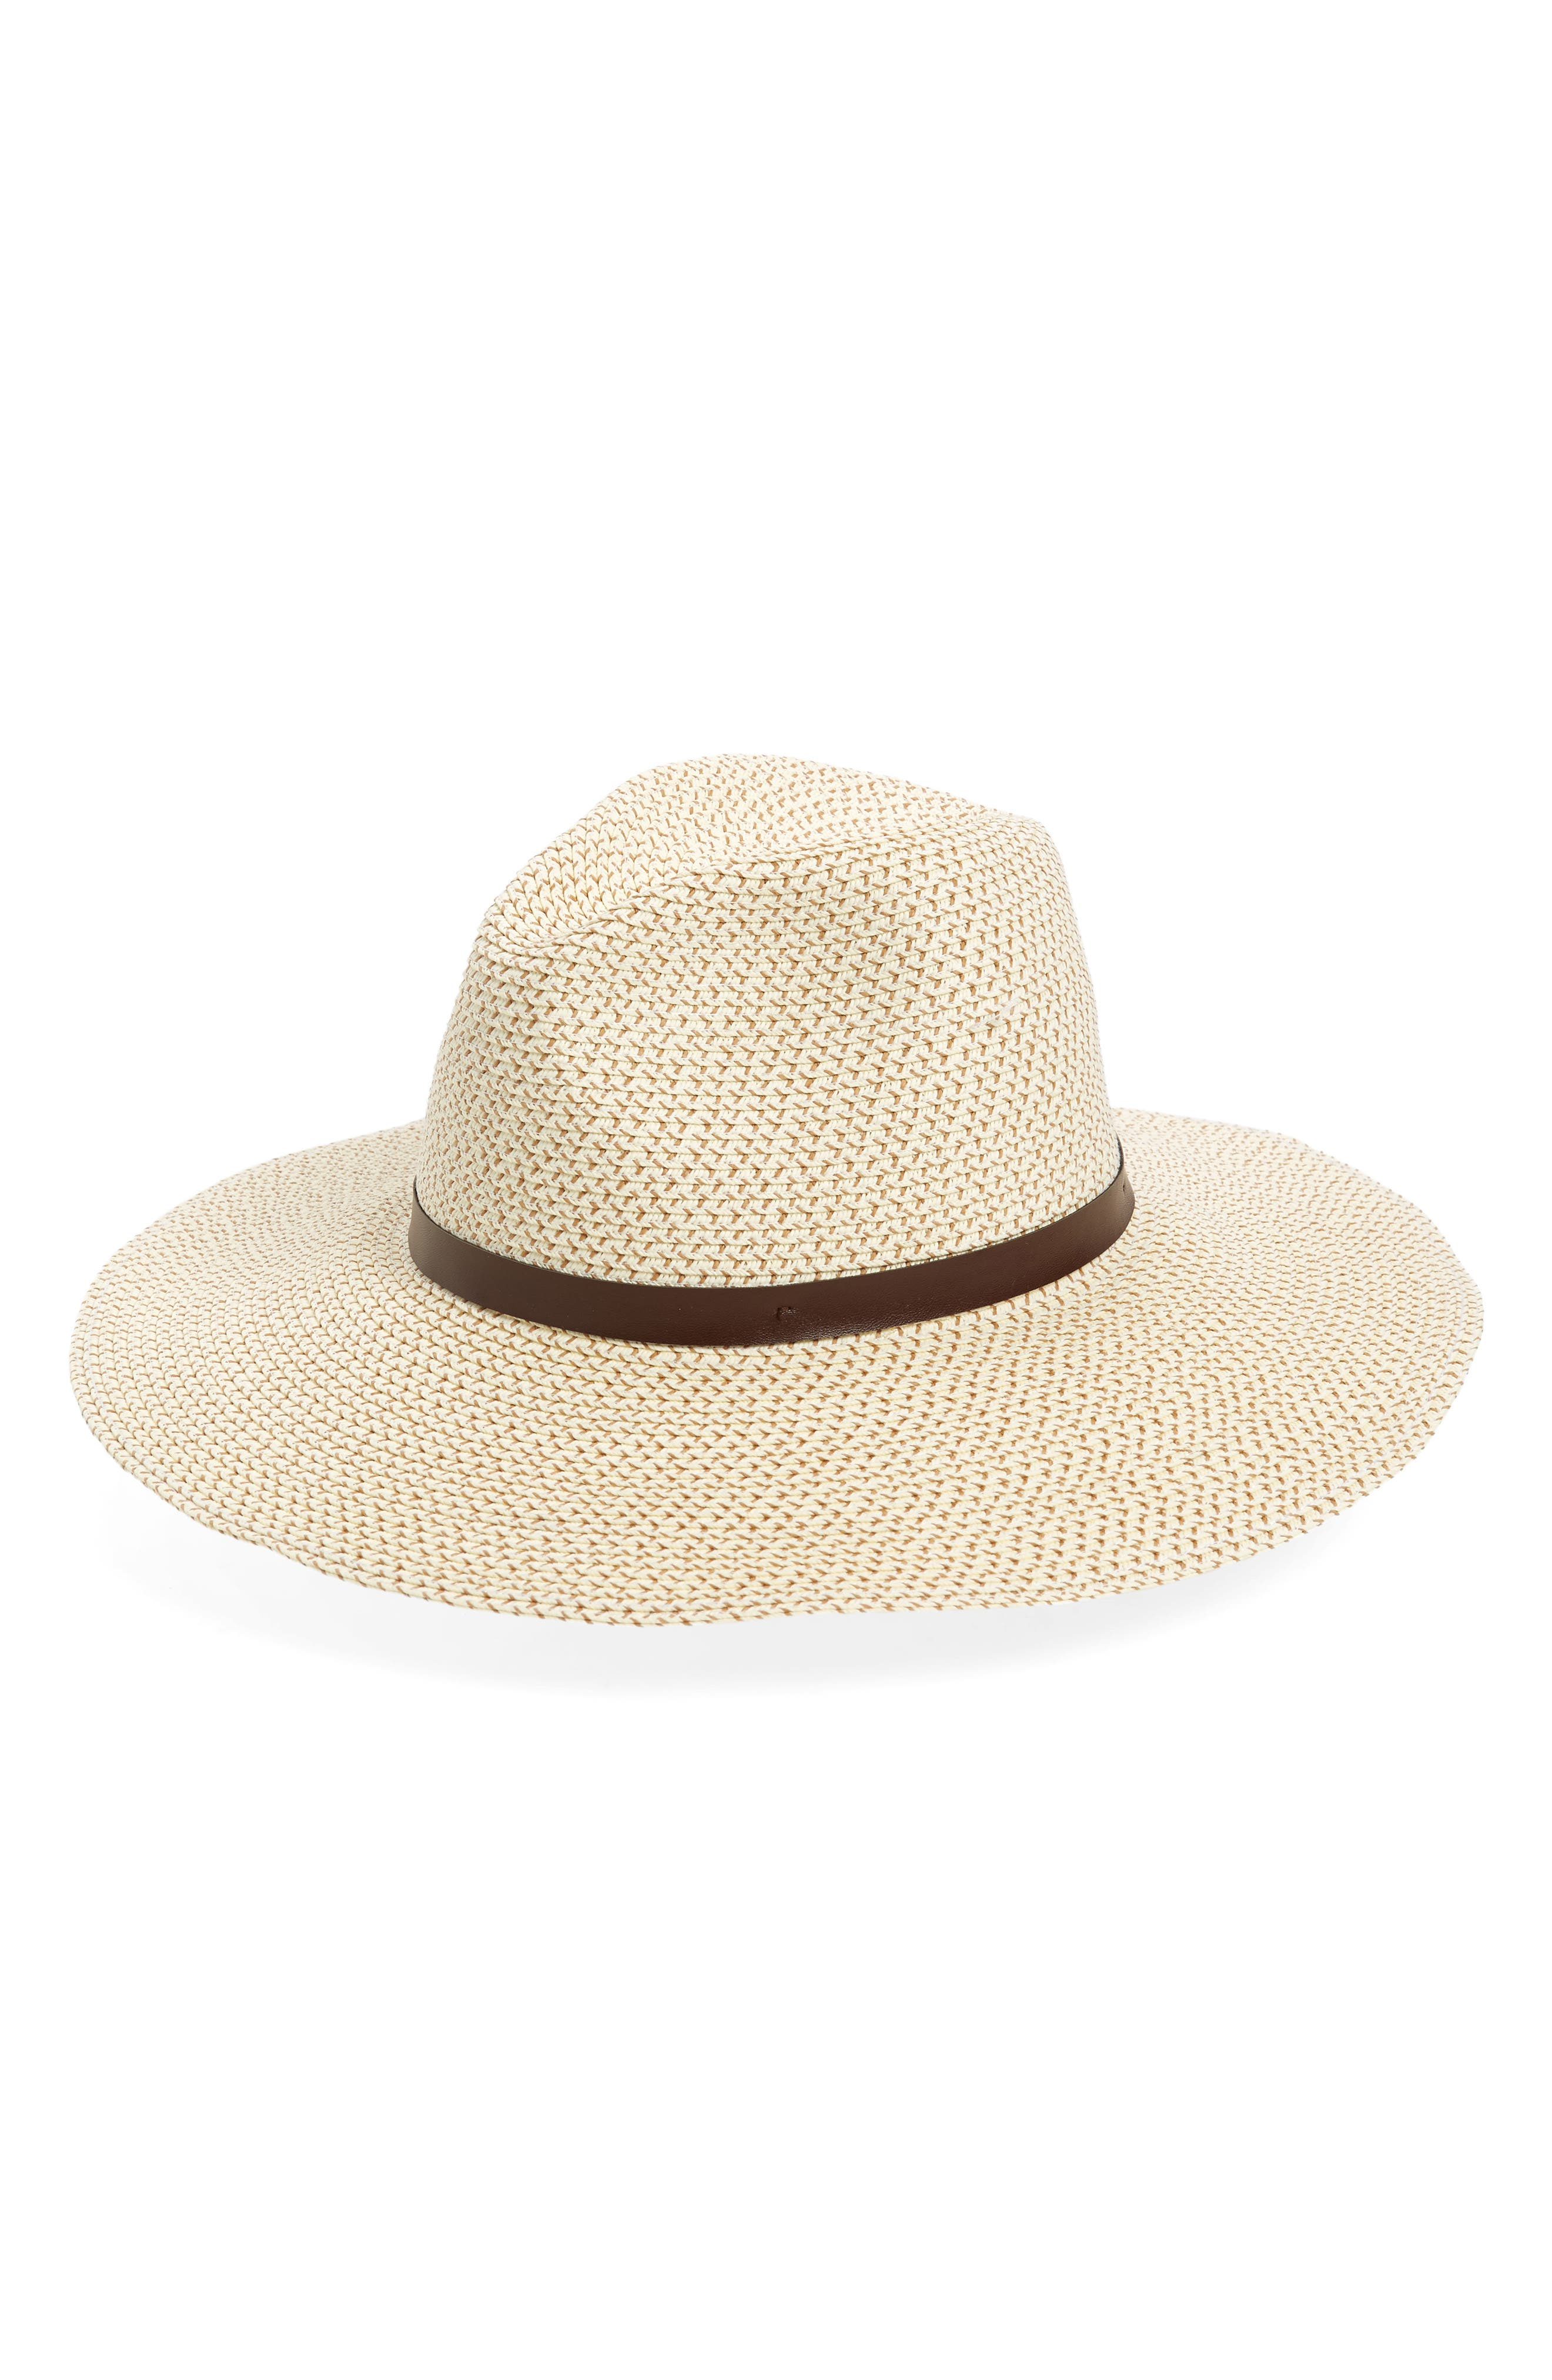 Band Straw Hat,                         Main,                         color, Ivory